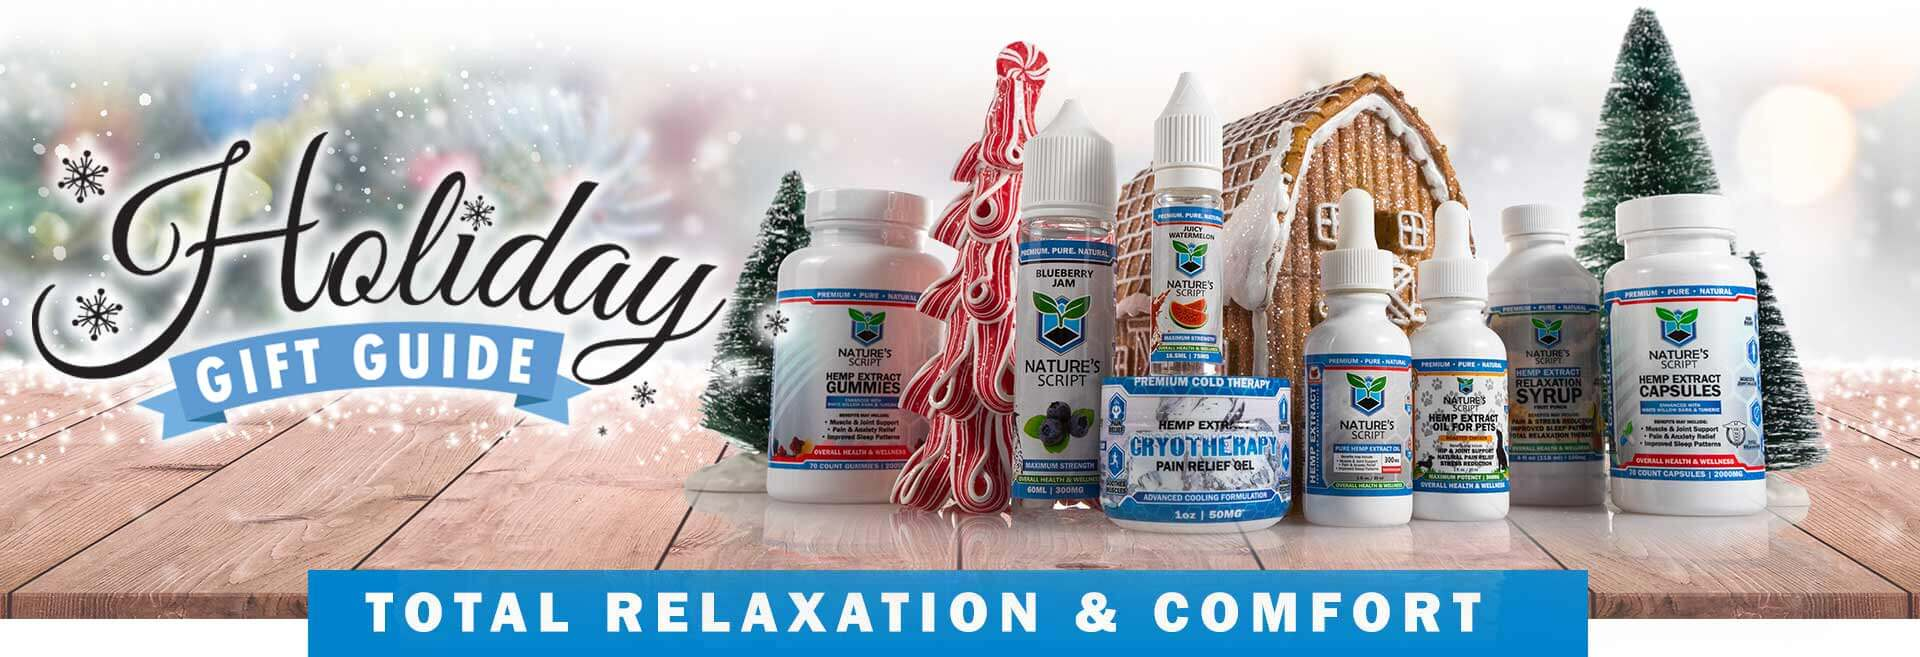 Holiday Gift Guide Nature's Script CBD